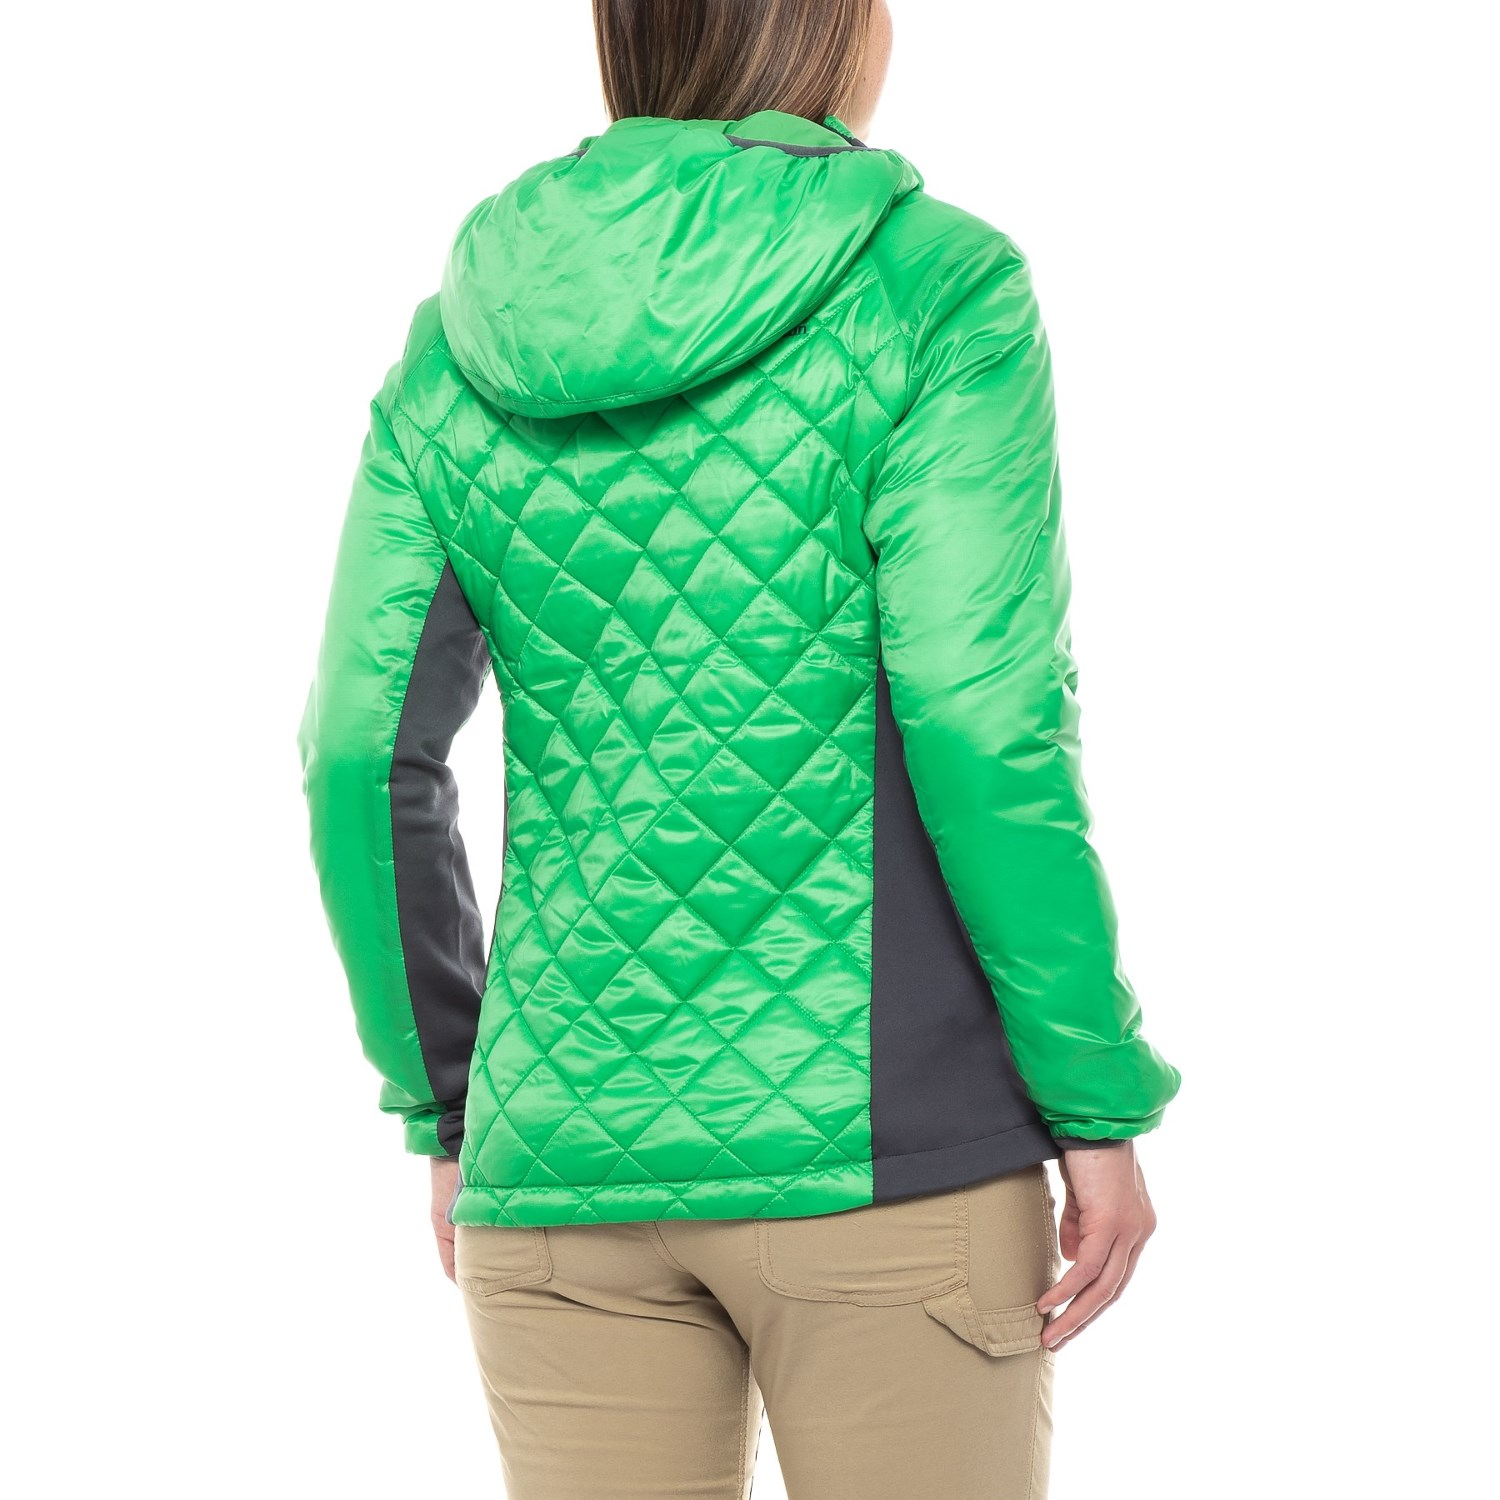 Jack Wolfskin Icy Tundra Jacket (For Women) Save 56%